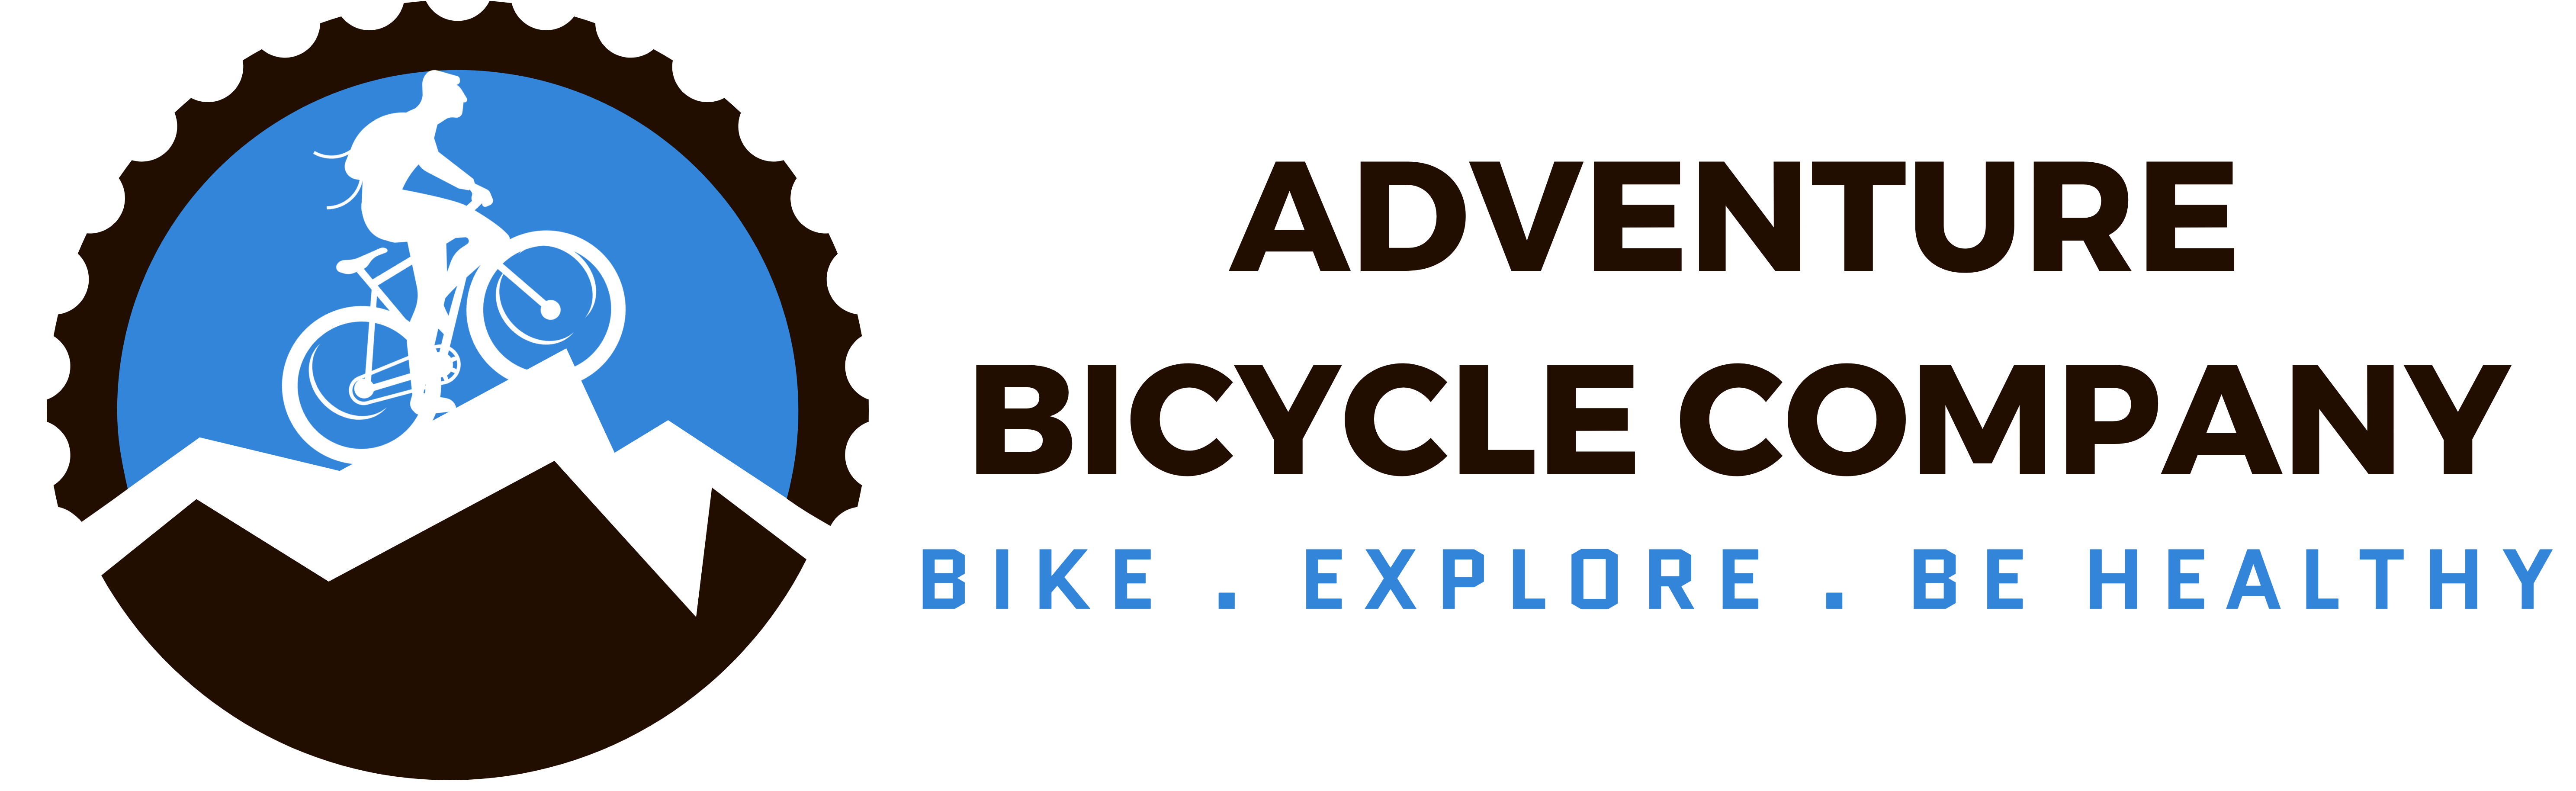 Adventure Bicycle Company Logo